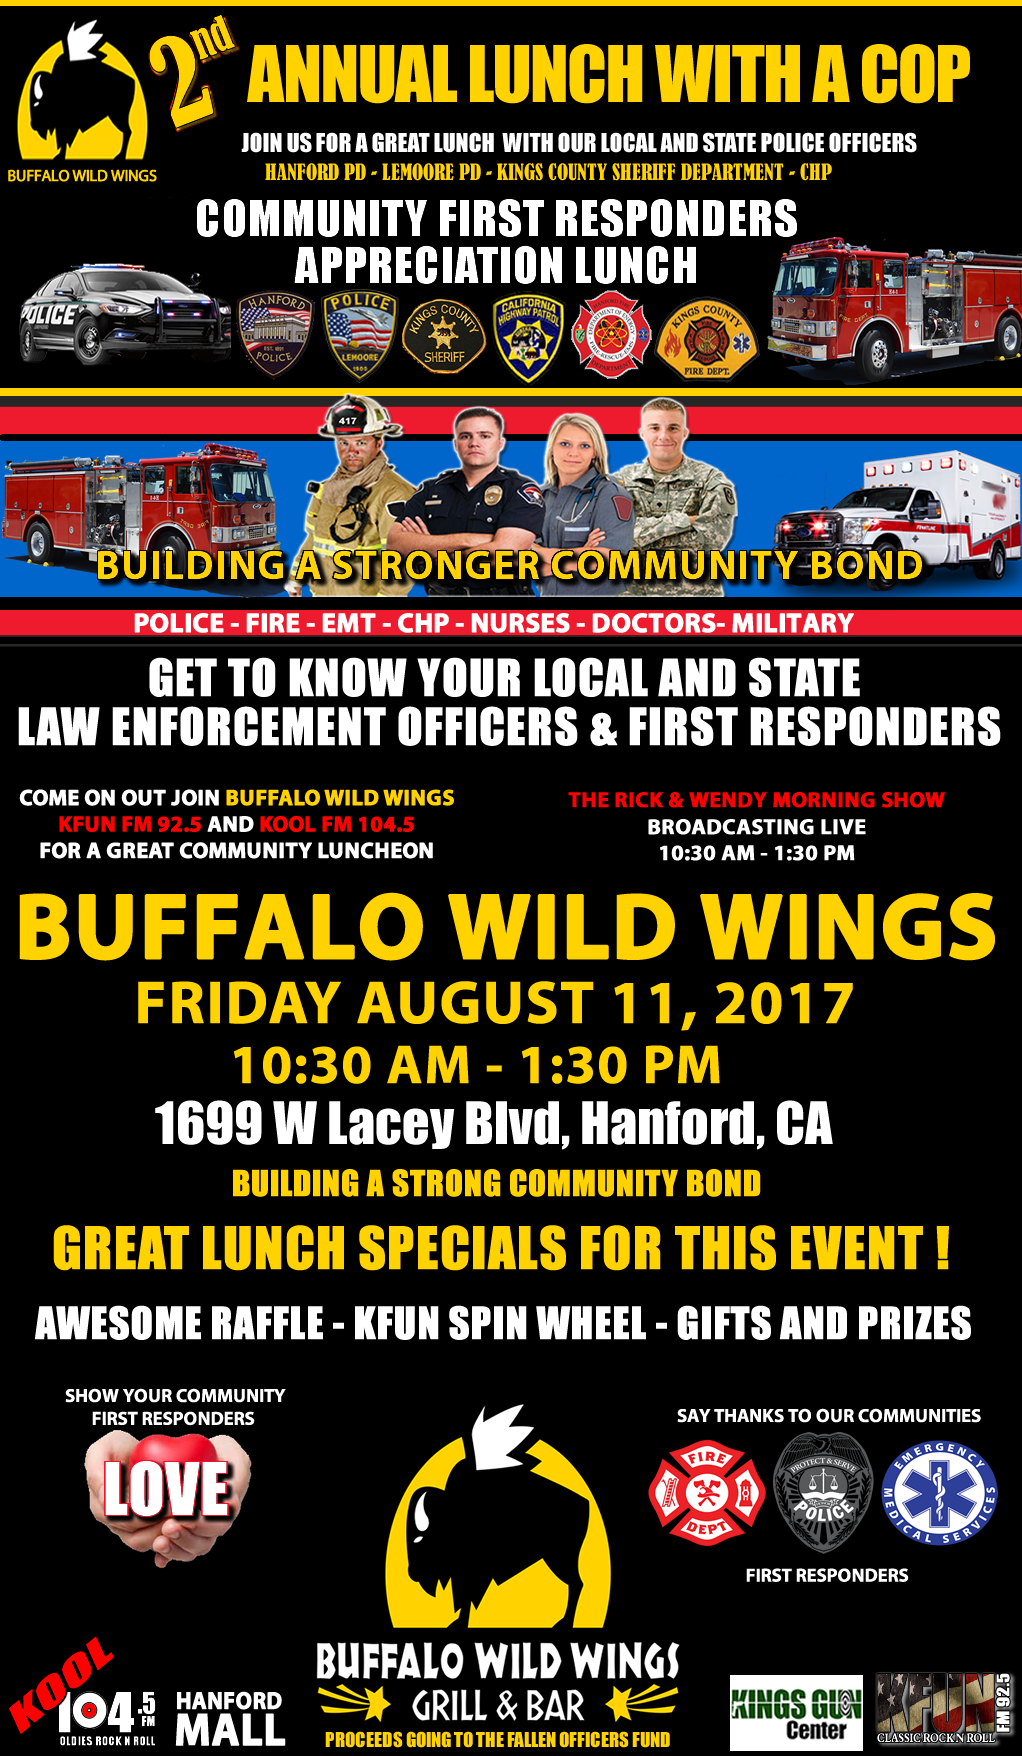 2017 WITH A COP BUFFALO WILD WINGS